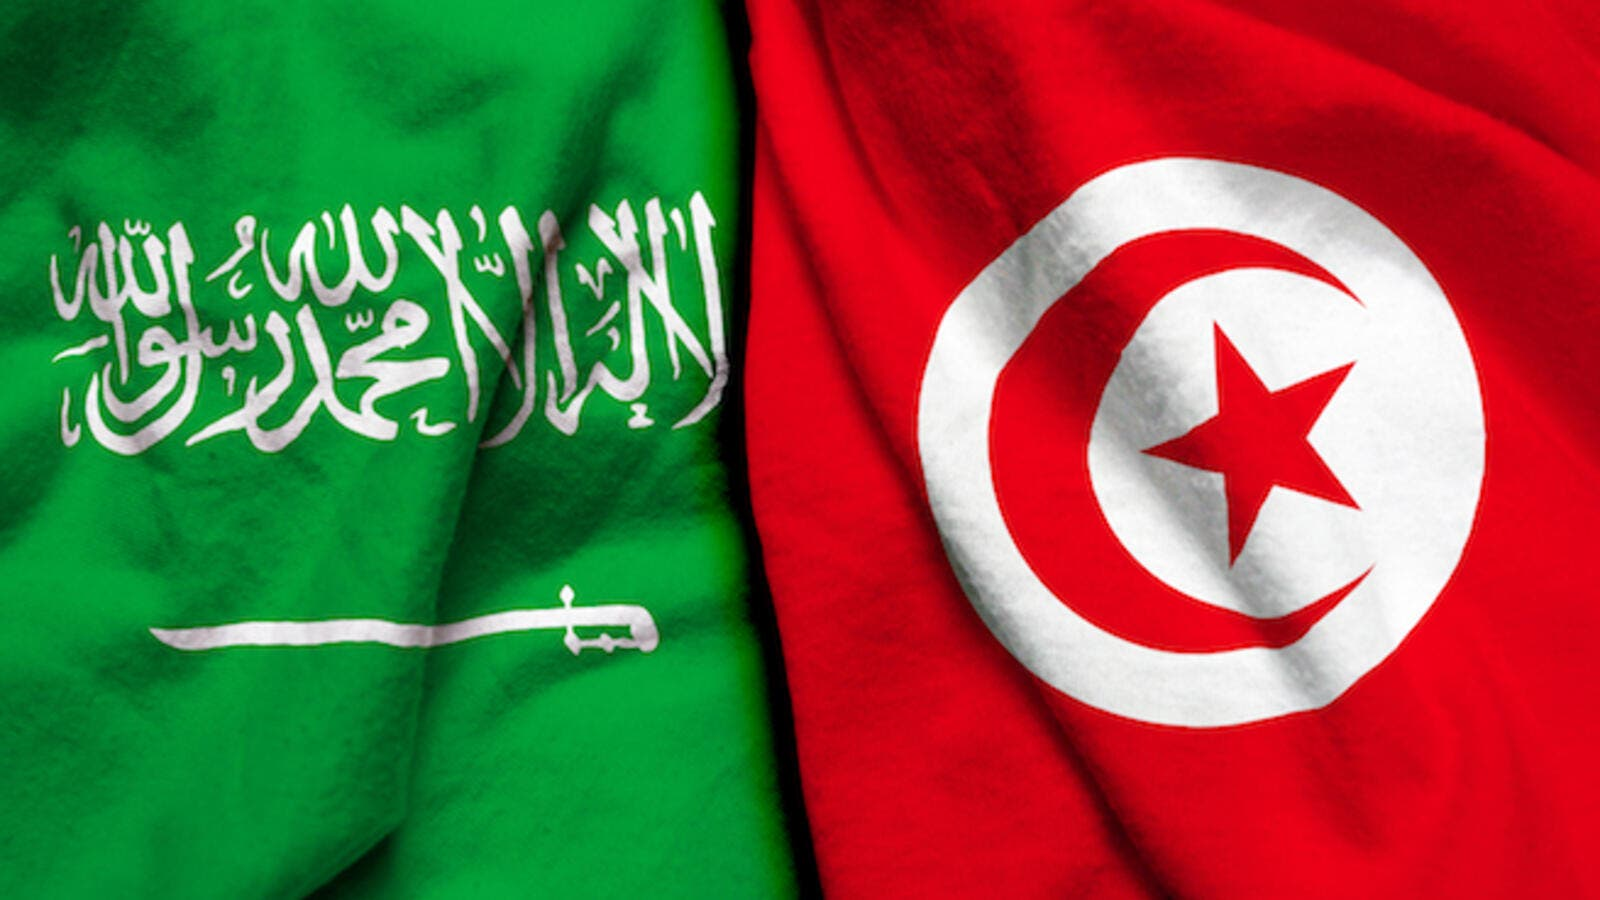 A MoU was also signed to extend the Saudi grant for maintenance of the King Abdulaziz Mosque in the Tunisian capital of Tunis. (Shutterstock)